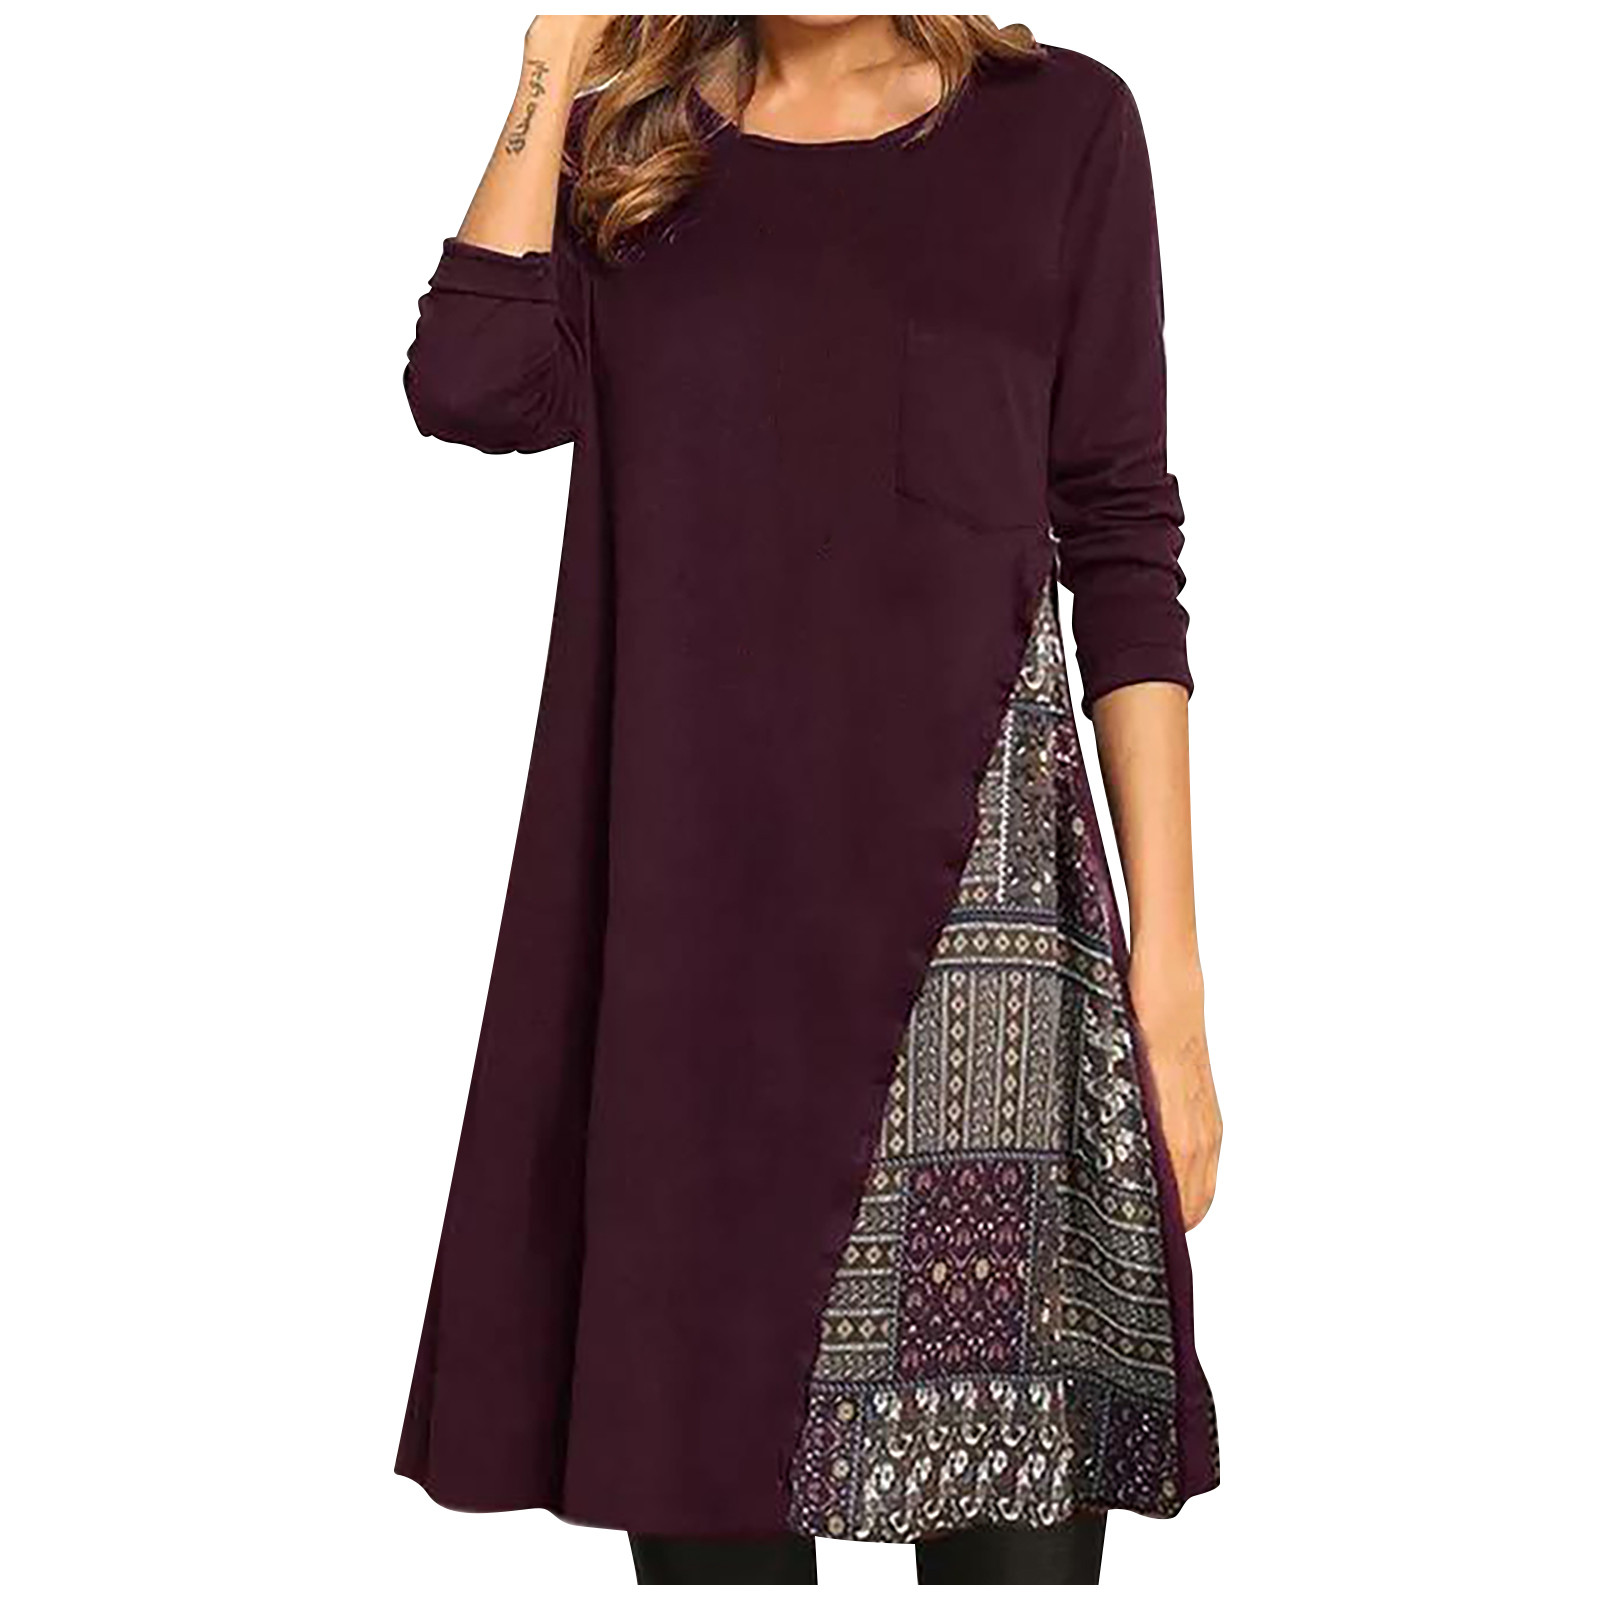 vestido de mujer Women Boho Print Color Block Shirt Round Neckline Shift Long Sleeve Pocket Dress